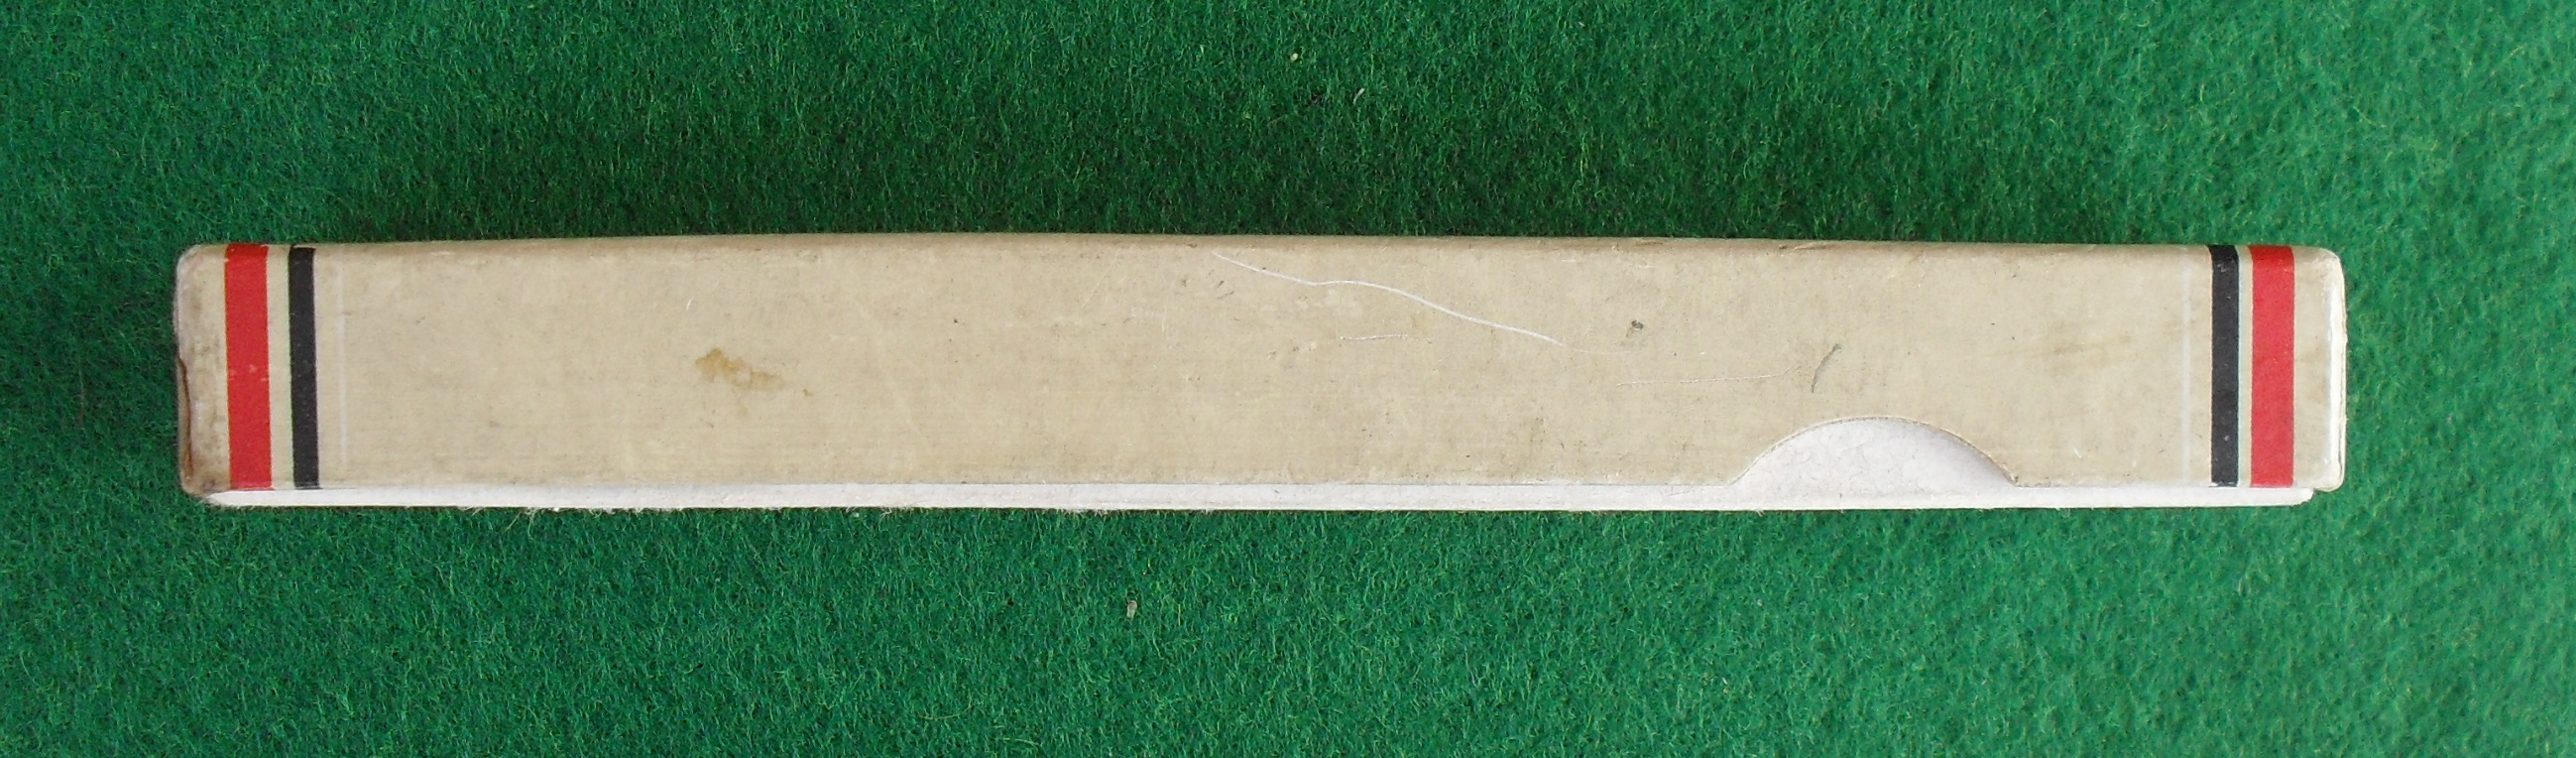 Summit Pen box - post WW2-other side.JPG